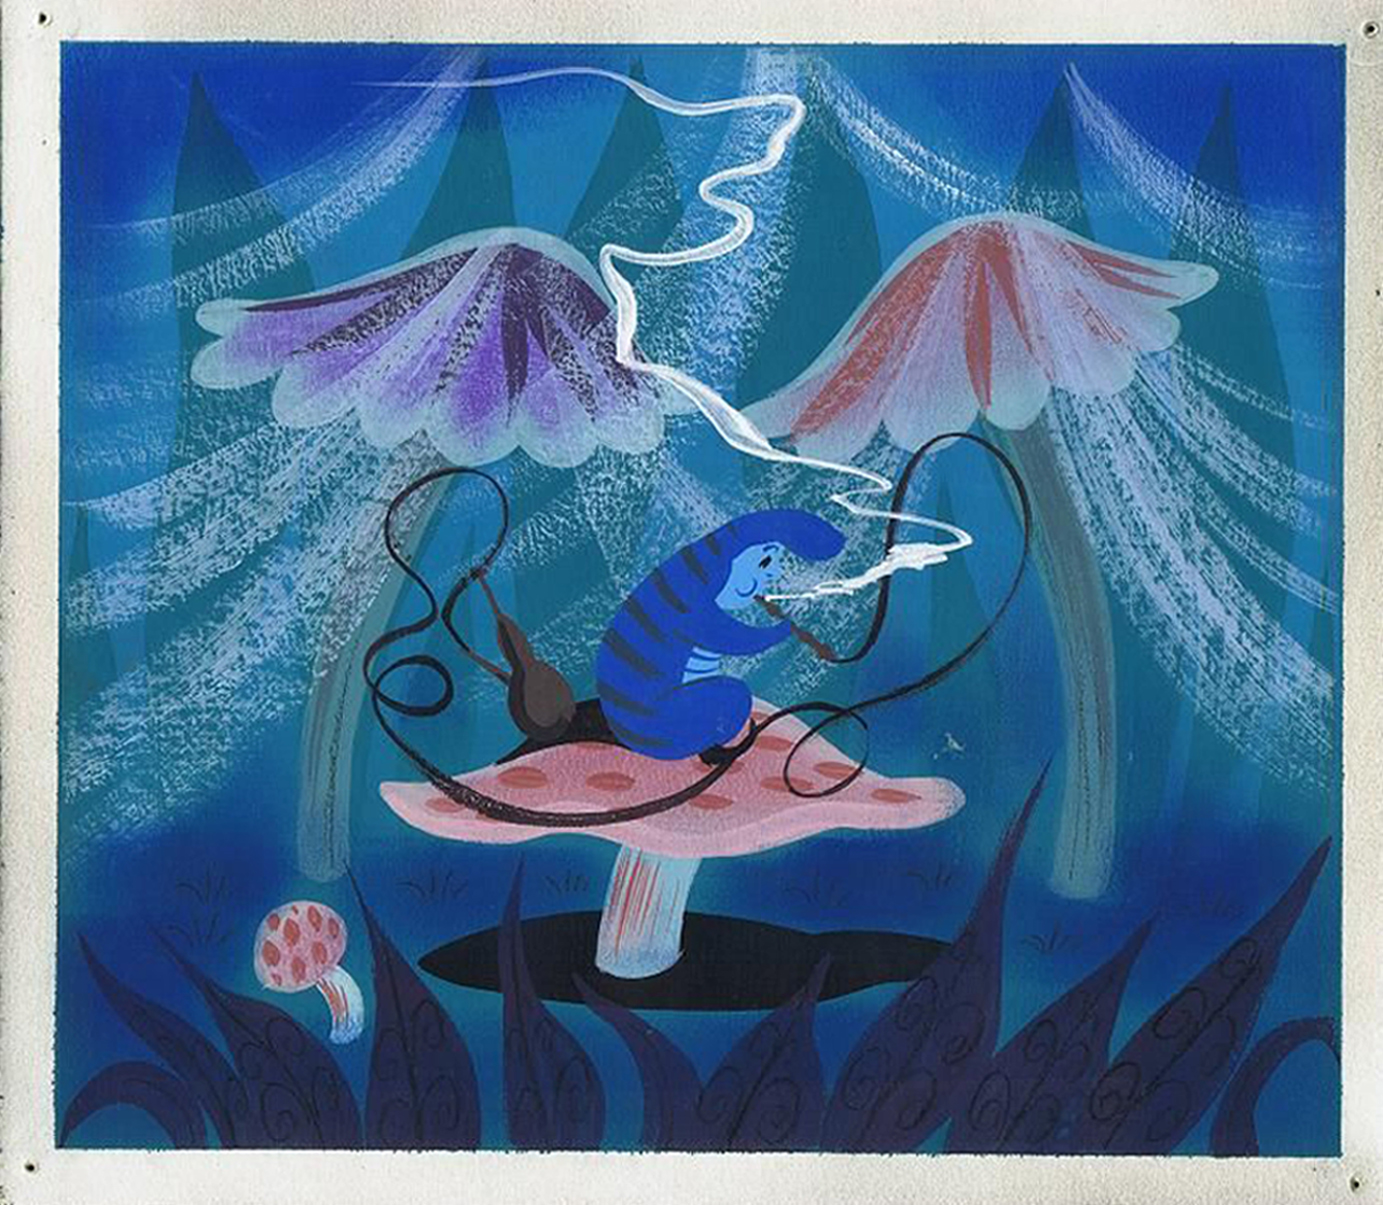 Mary Blair Concept Art